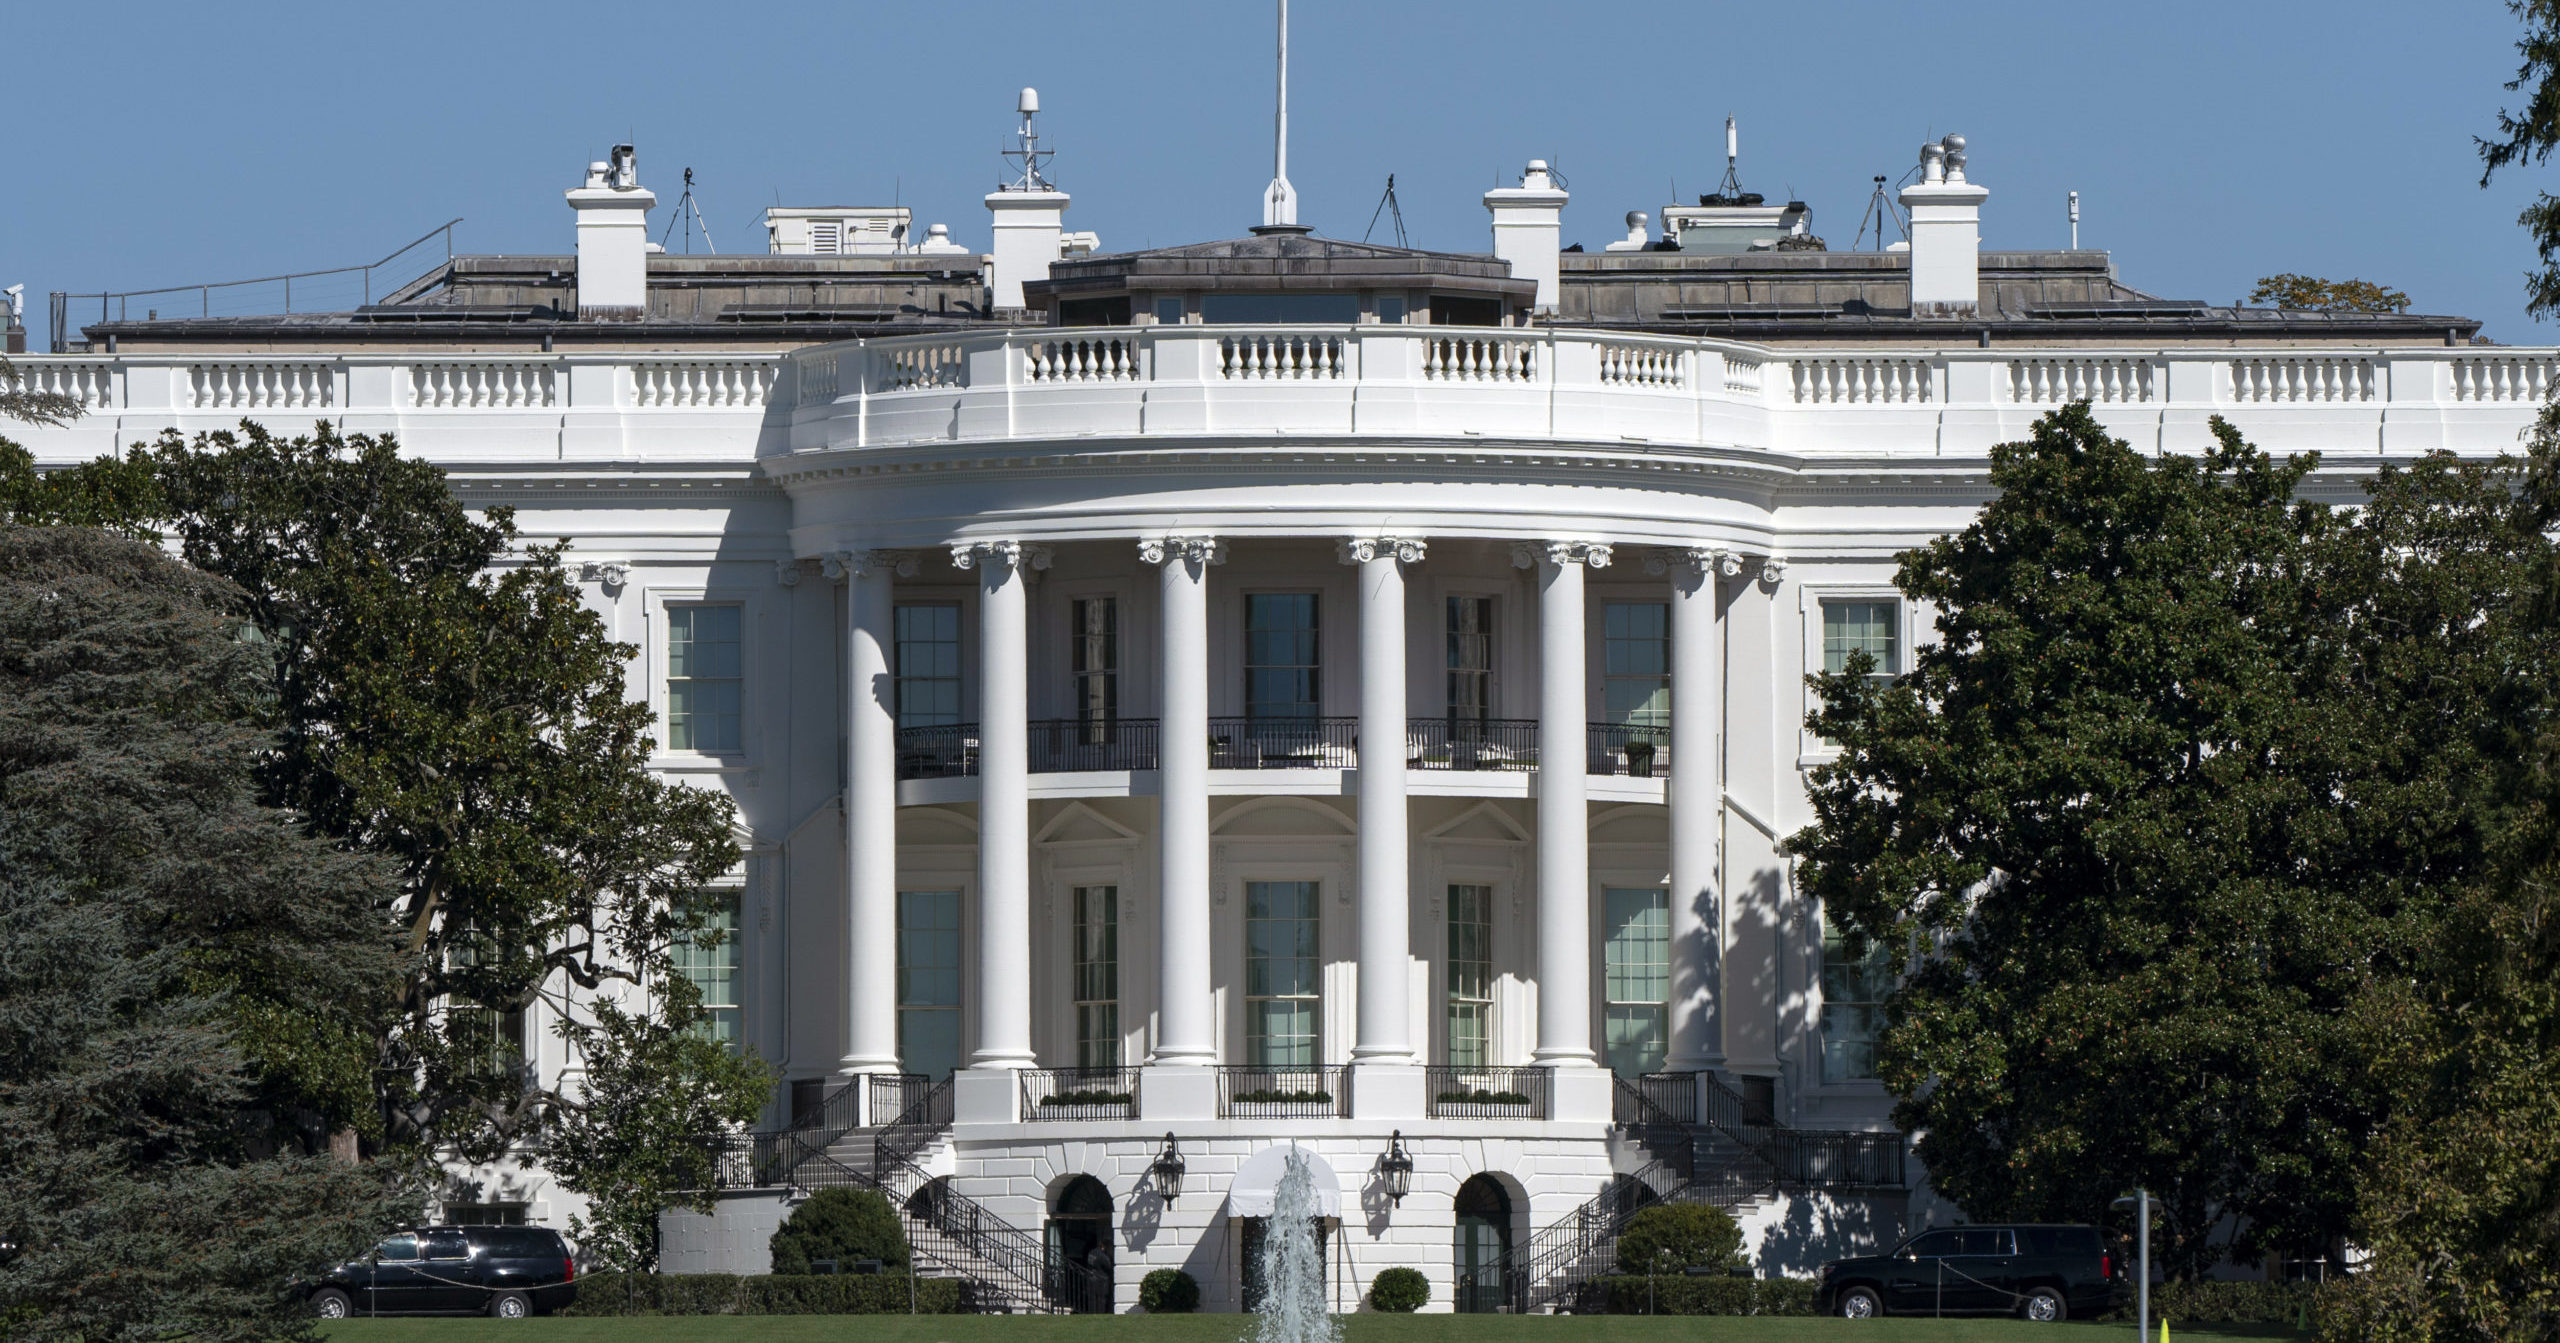 The White House is seen on Oct. 8, 2020, in Washington, D.C.